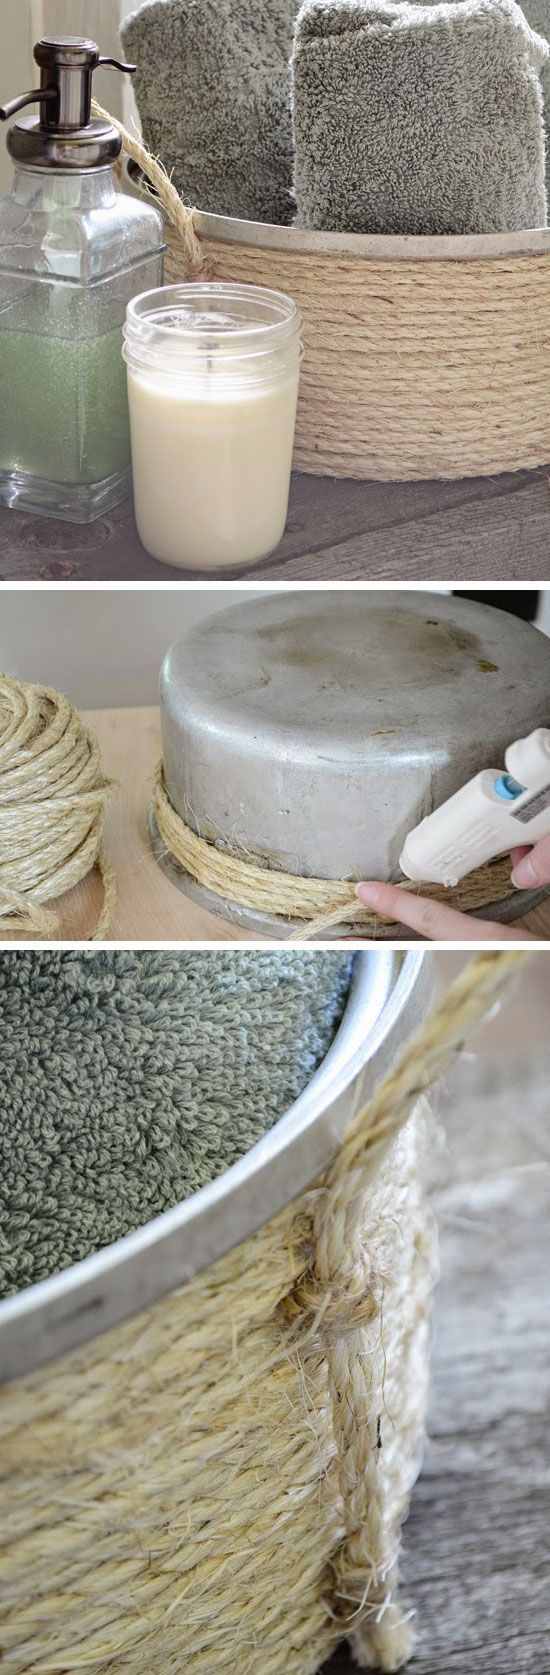 Create a Basket out of an Old Pot   Click Pic for 16 DIY Bathroom Storage. 1000  ideas about Basket Bathroom Storage on Pinterest   Small